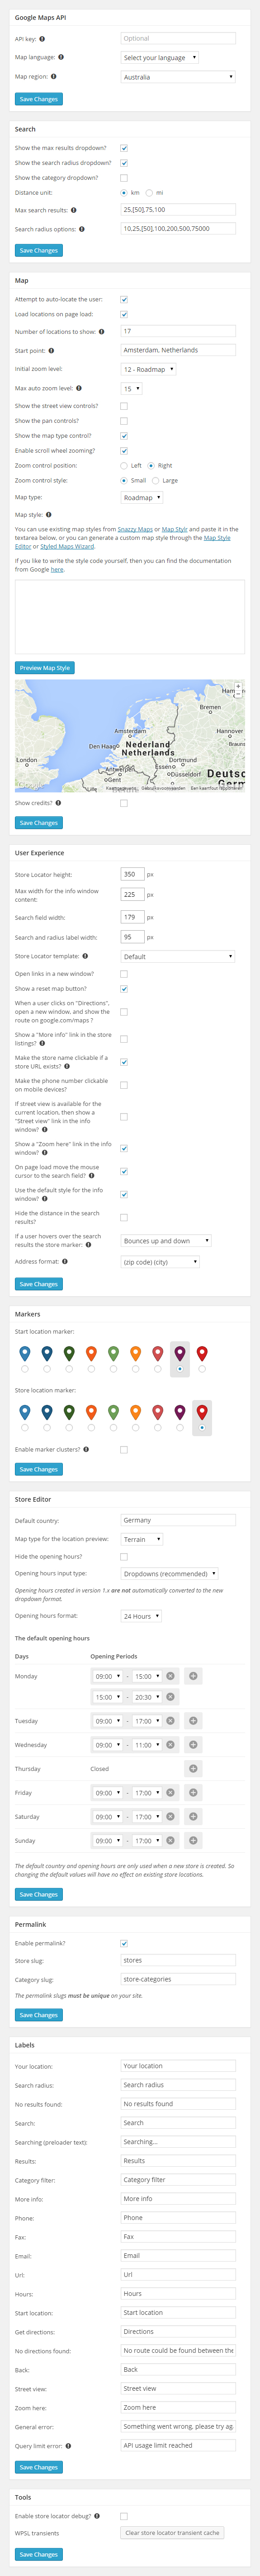 wp-store-locator screenshot 4